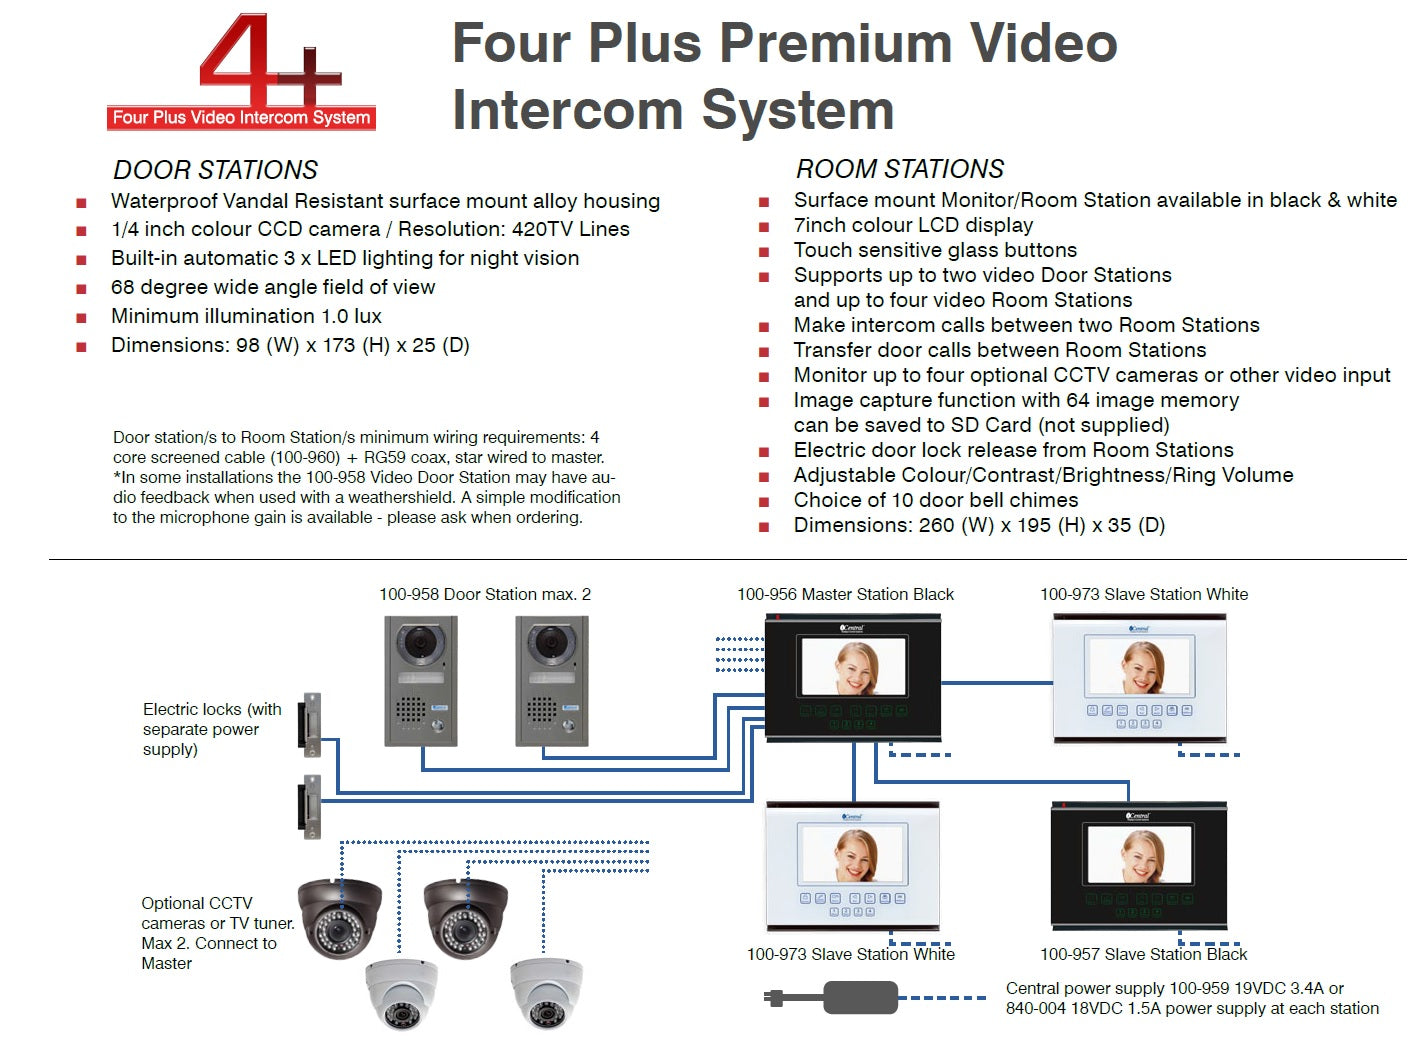 Icentral Four Plus Video Communication System Idomus Electrical Wiring Colours Australia White 68 Degree Wide Angle Field Of View Minimum Illumination 10 Lux Dimensions 98 W X 173 H 25 D Electric Locks With Separate Power Supply